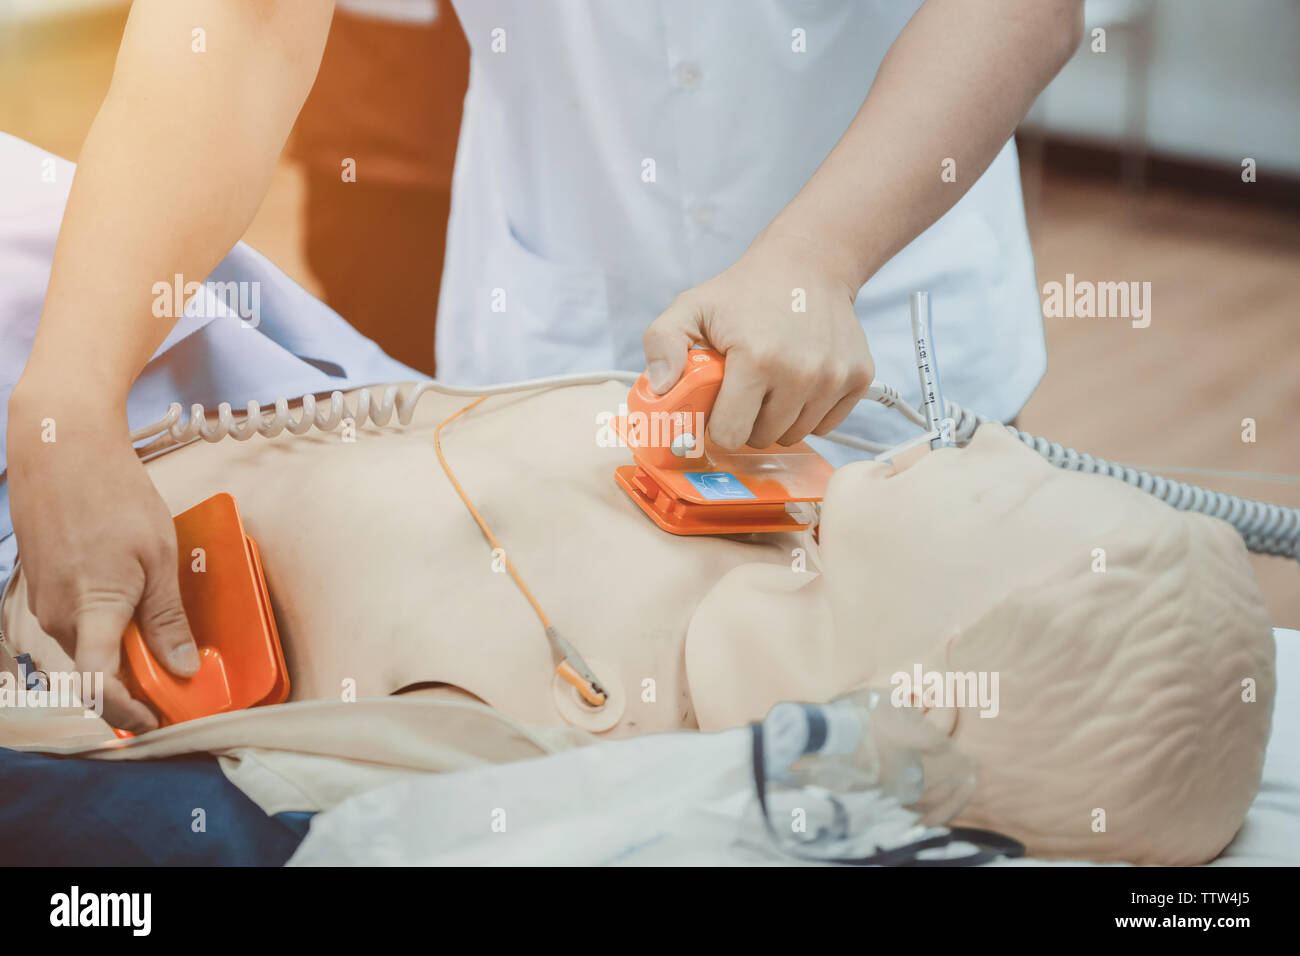 hands of doctor holding defibrillator electrods, performing defibrillation or electropulse therap Stock Photo